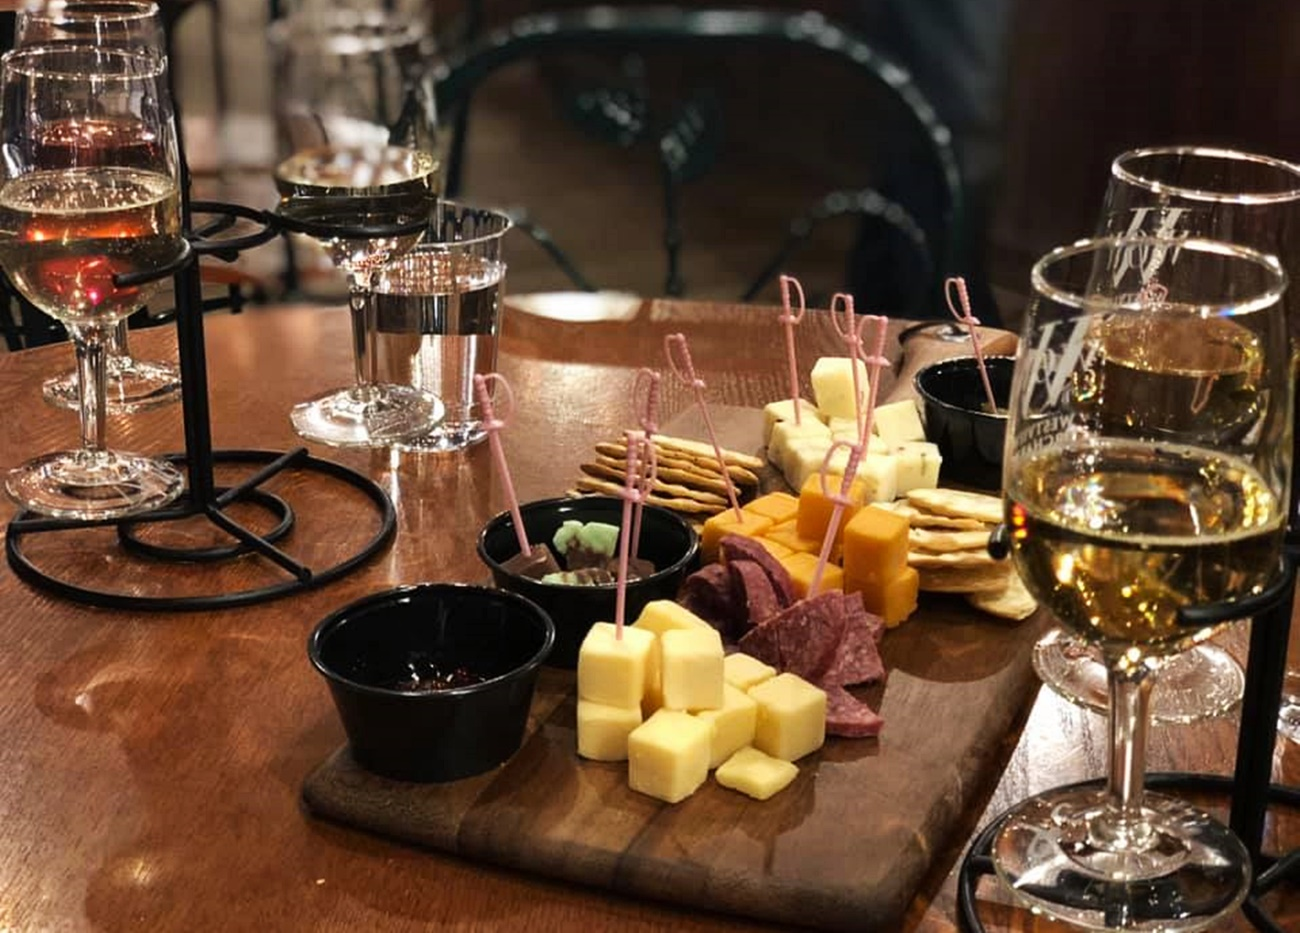 Westview Orchard wine and cheese tasting